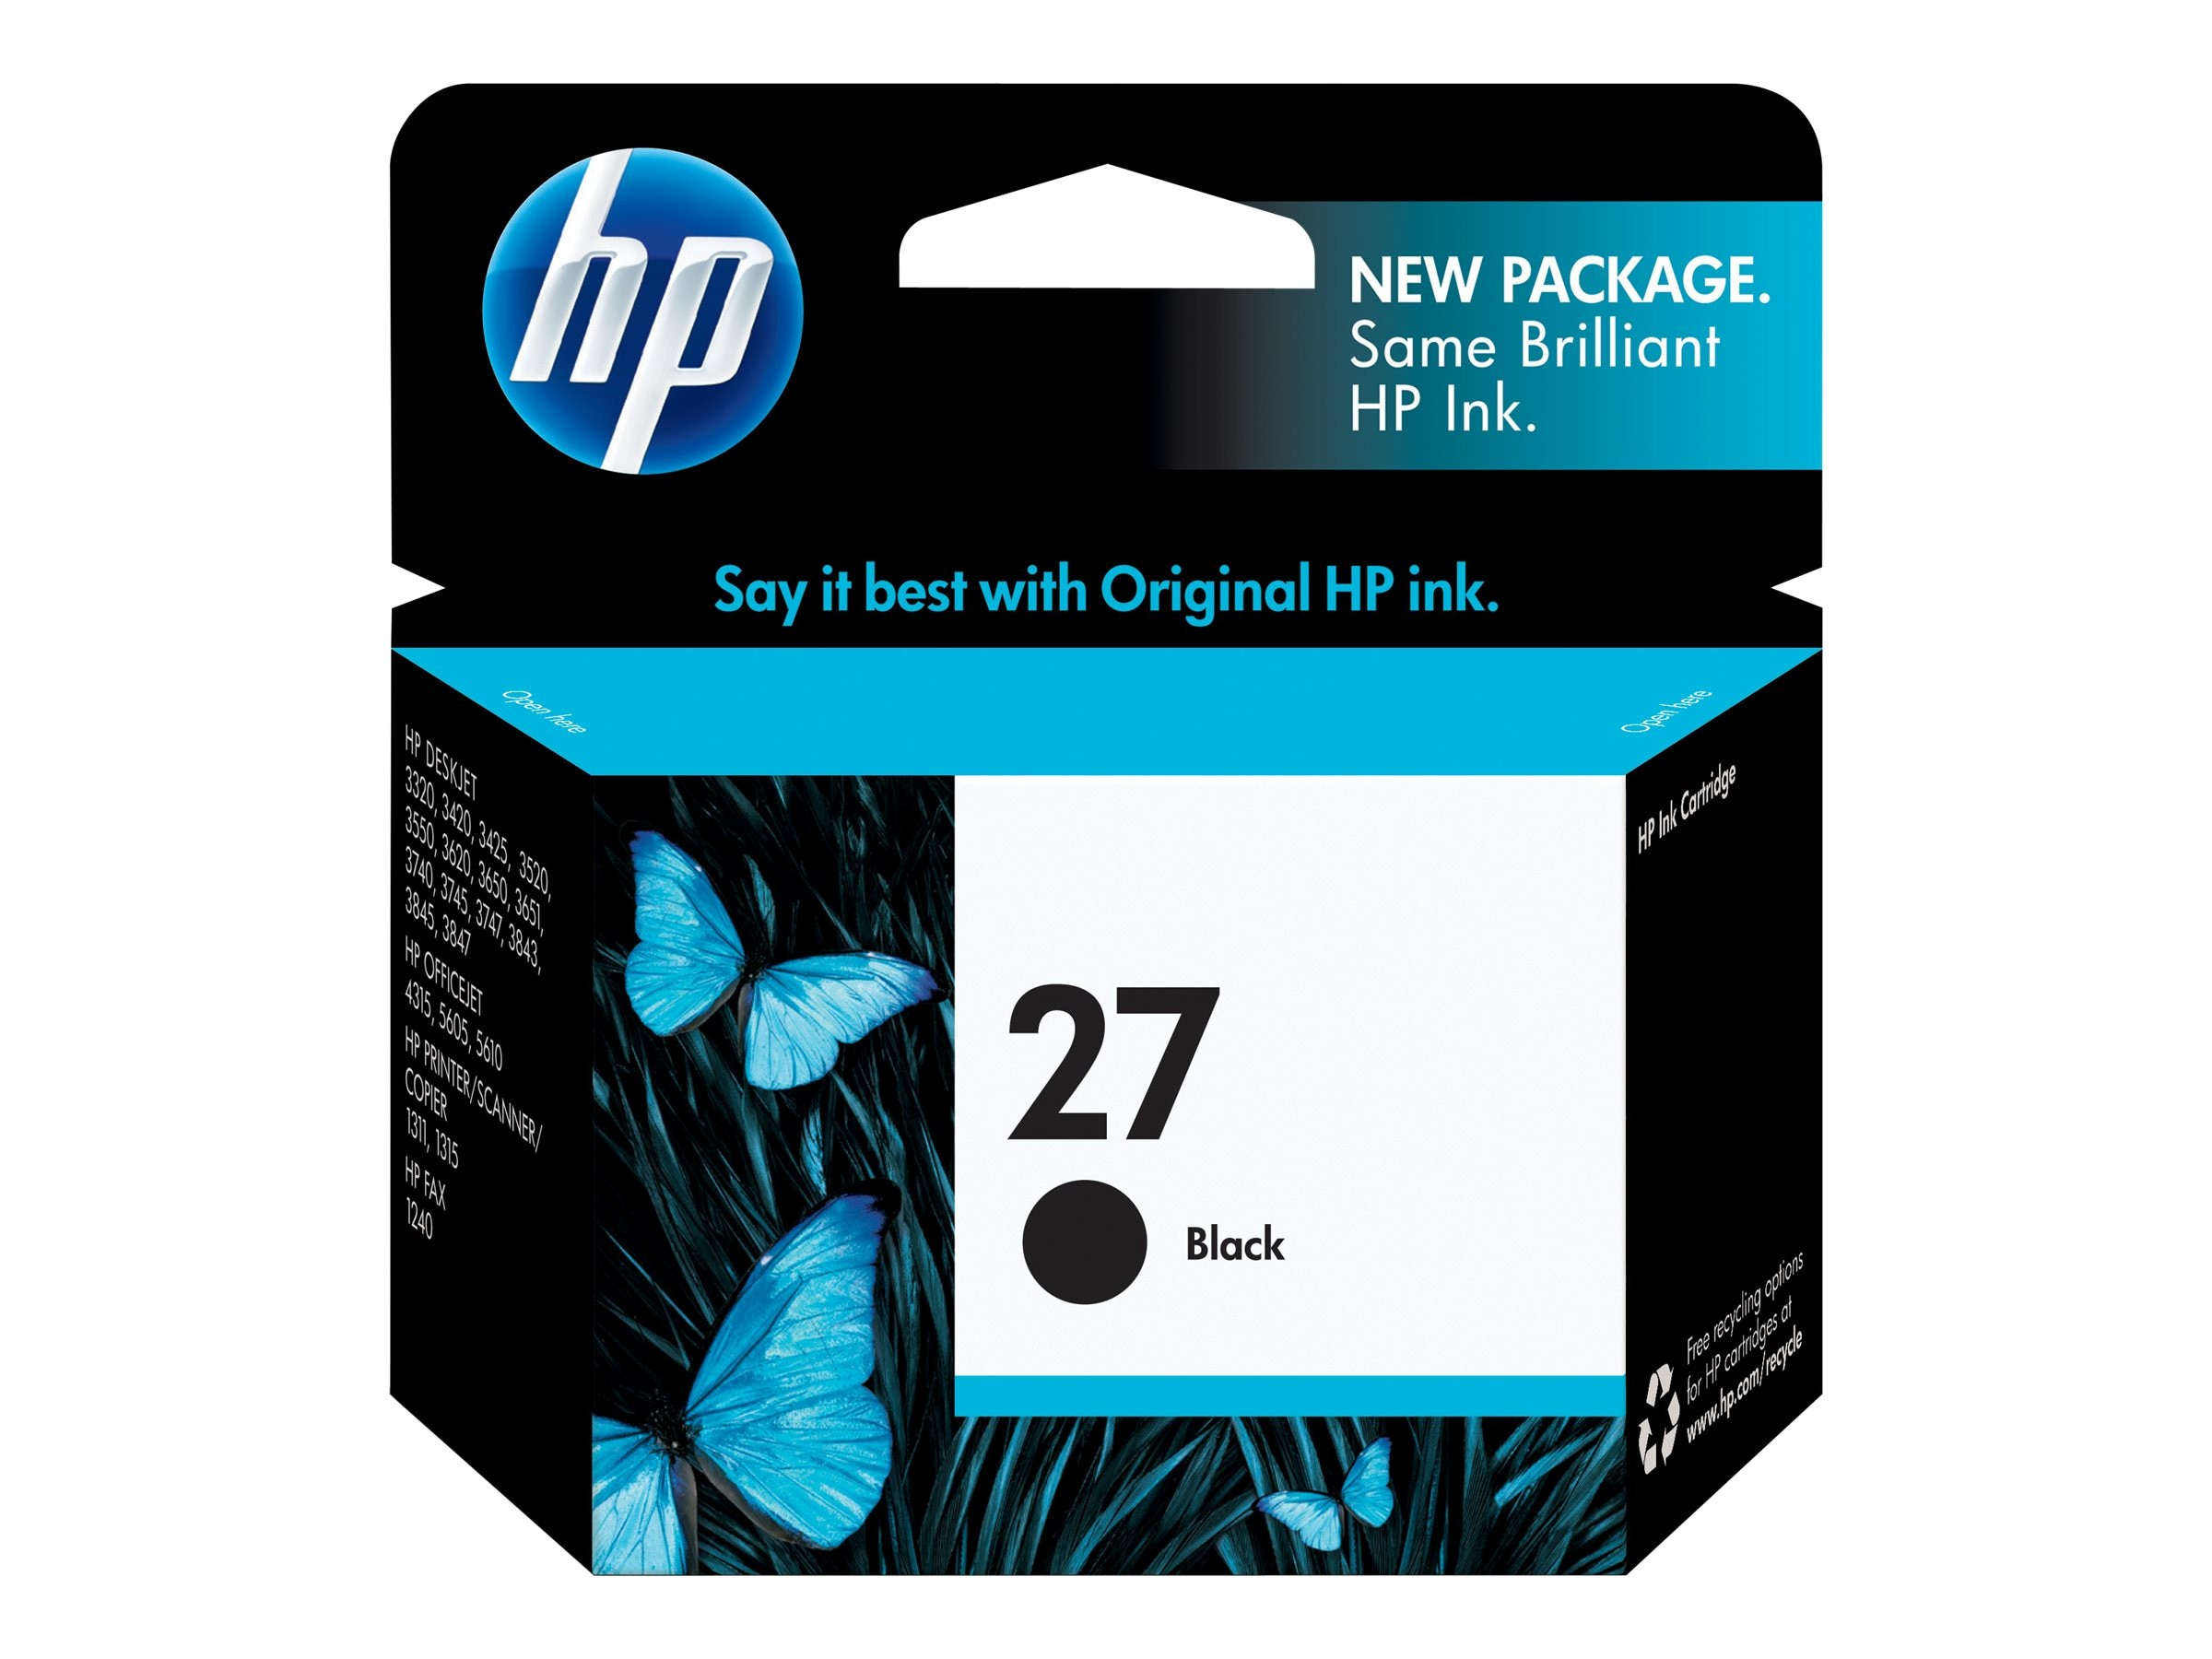 HP 27 (C8727AN) Black Original Ink Cartridge for HP Deskjet Series 3300 & 3400